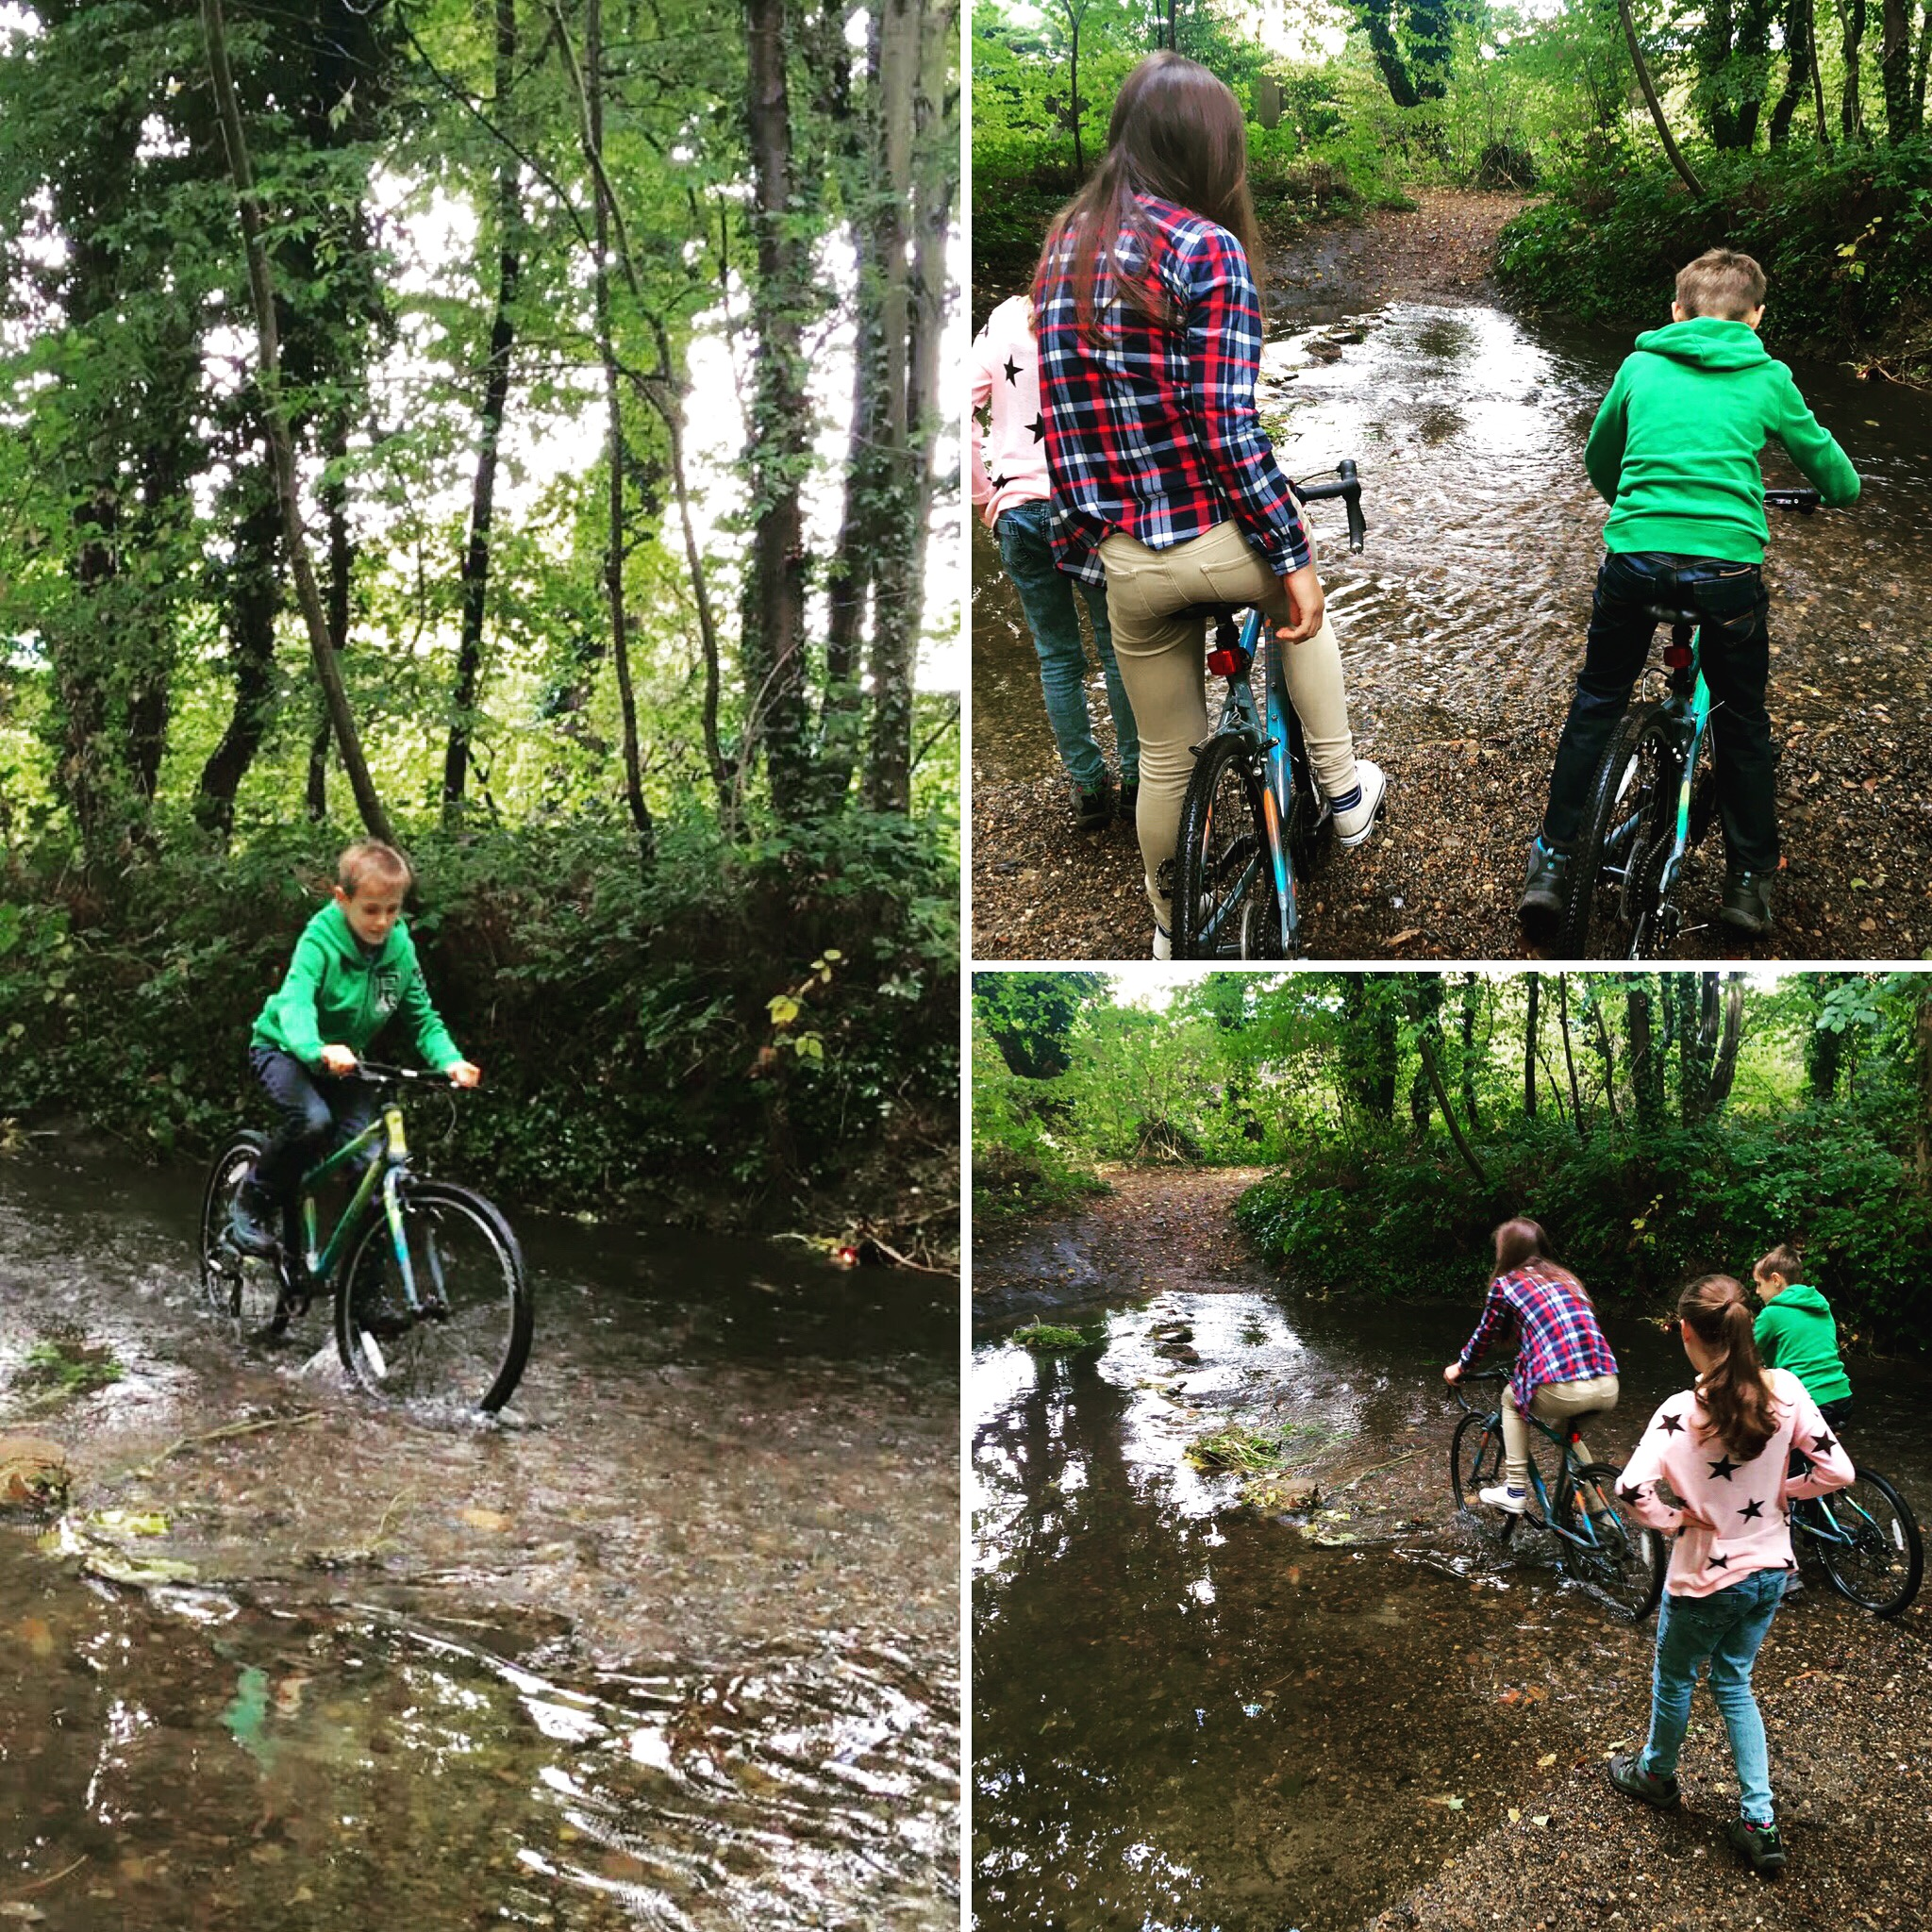 Fording the river (I think we mean stream!)